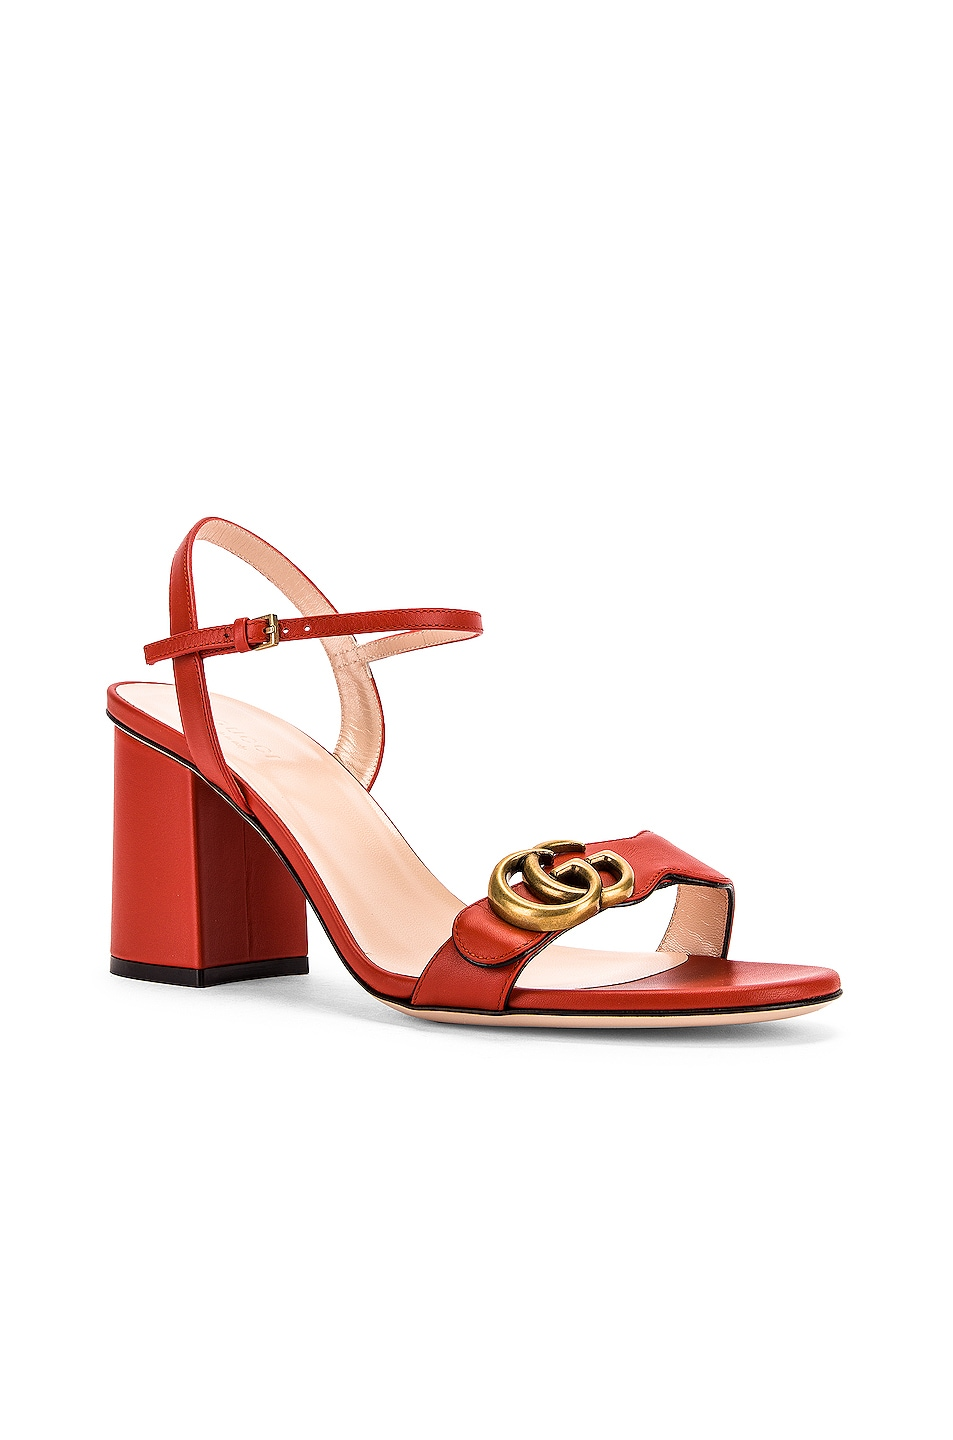 Image 3 of Gucci Marmont Sandals in Bright Pumpkin